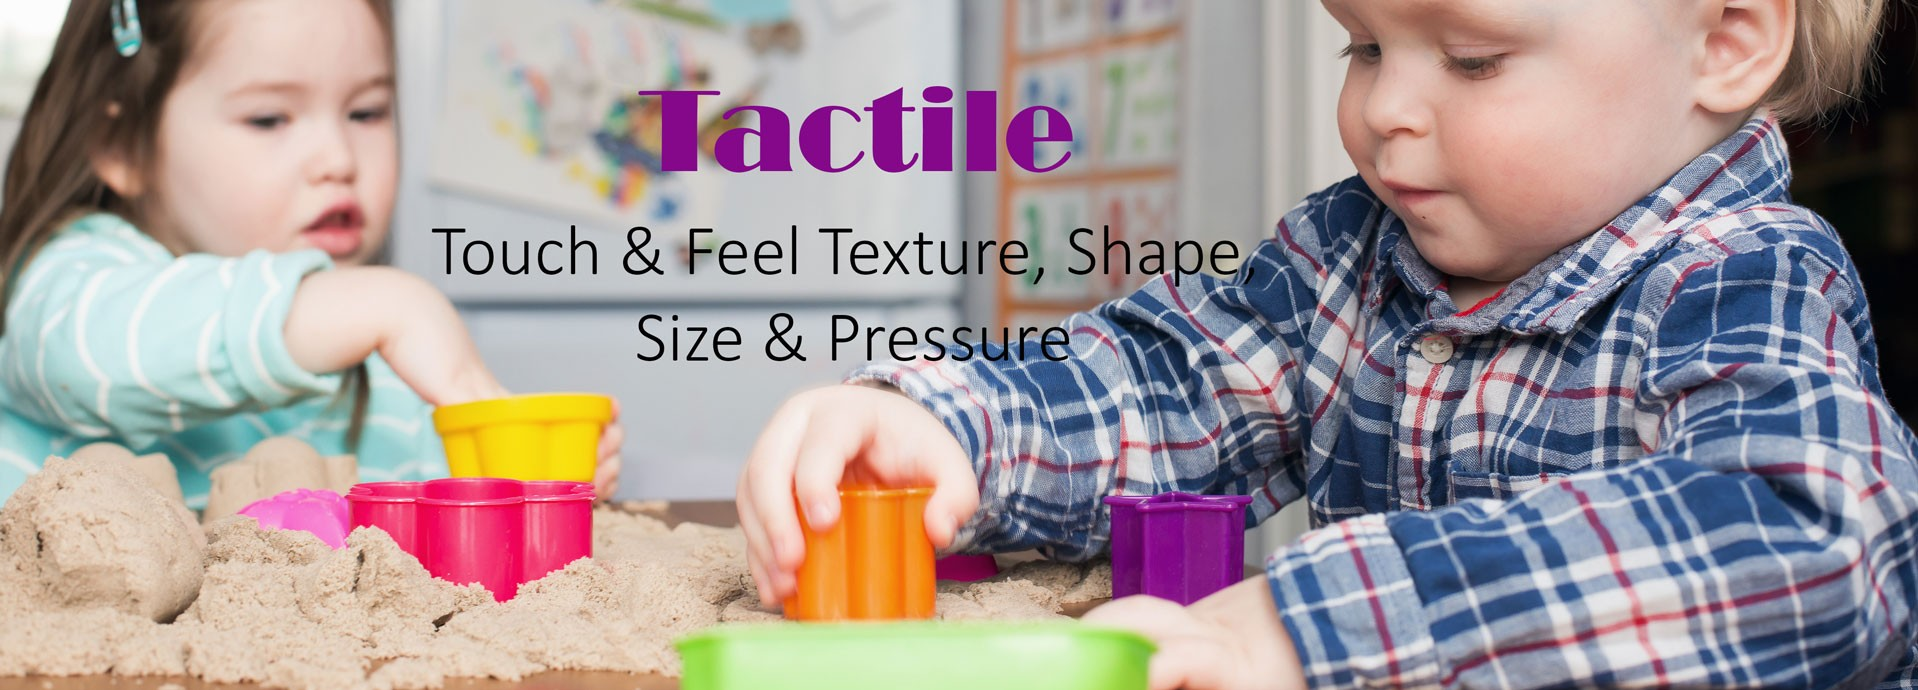 Tactile: Touch & Feel Texture, Shape, Size & Pressure (a child playing with spikey ball, kinetic sand, etc)